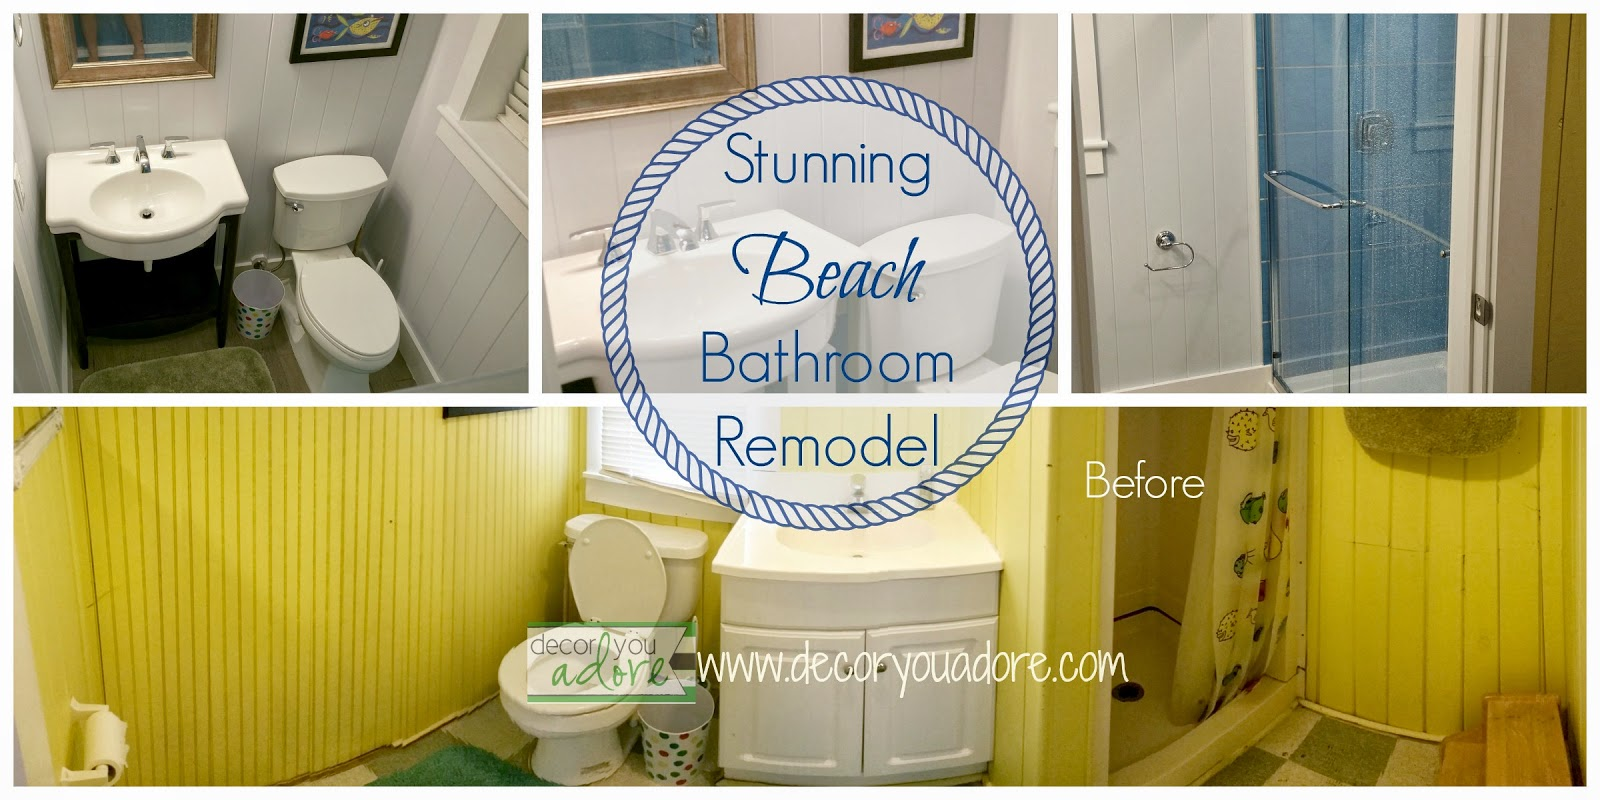 Decor You Adore: Beach House Bath Remodel- Stunning Before & After